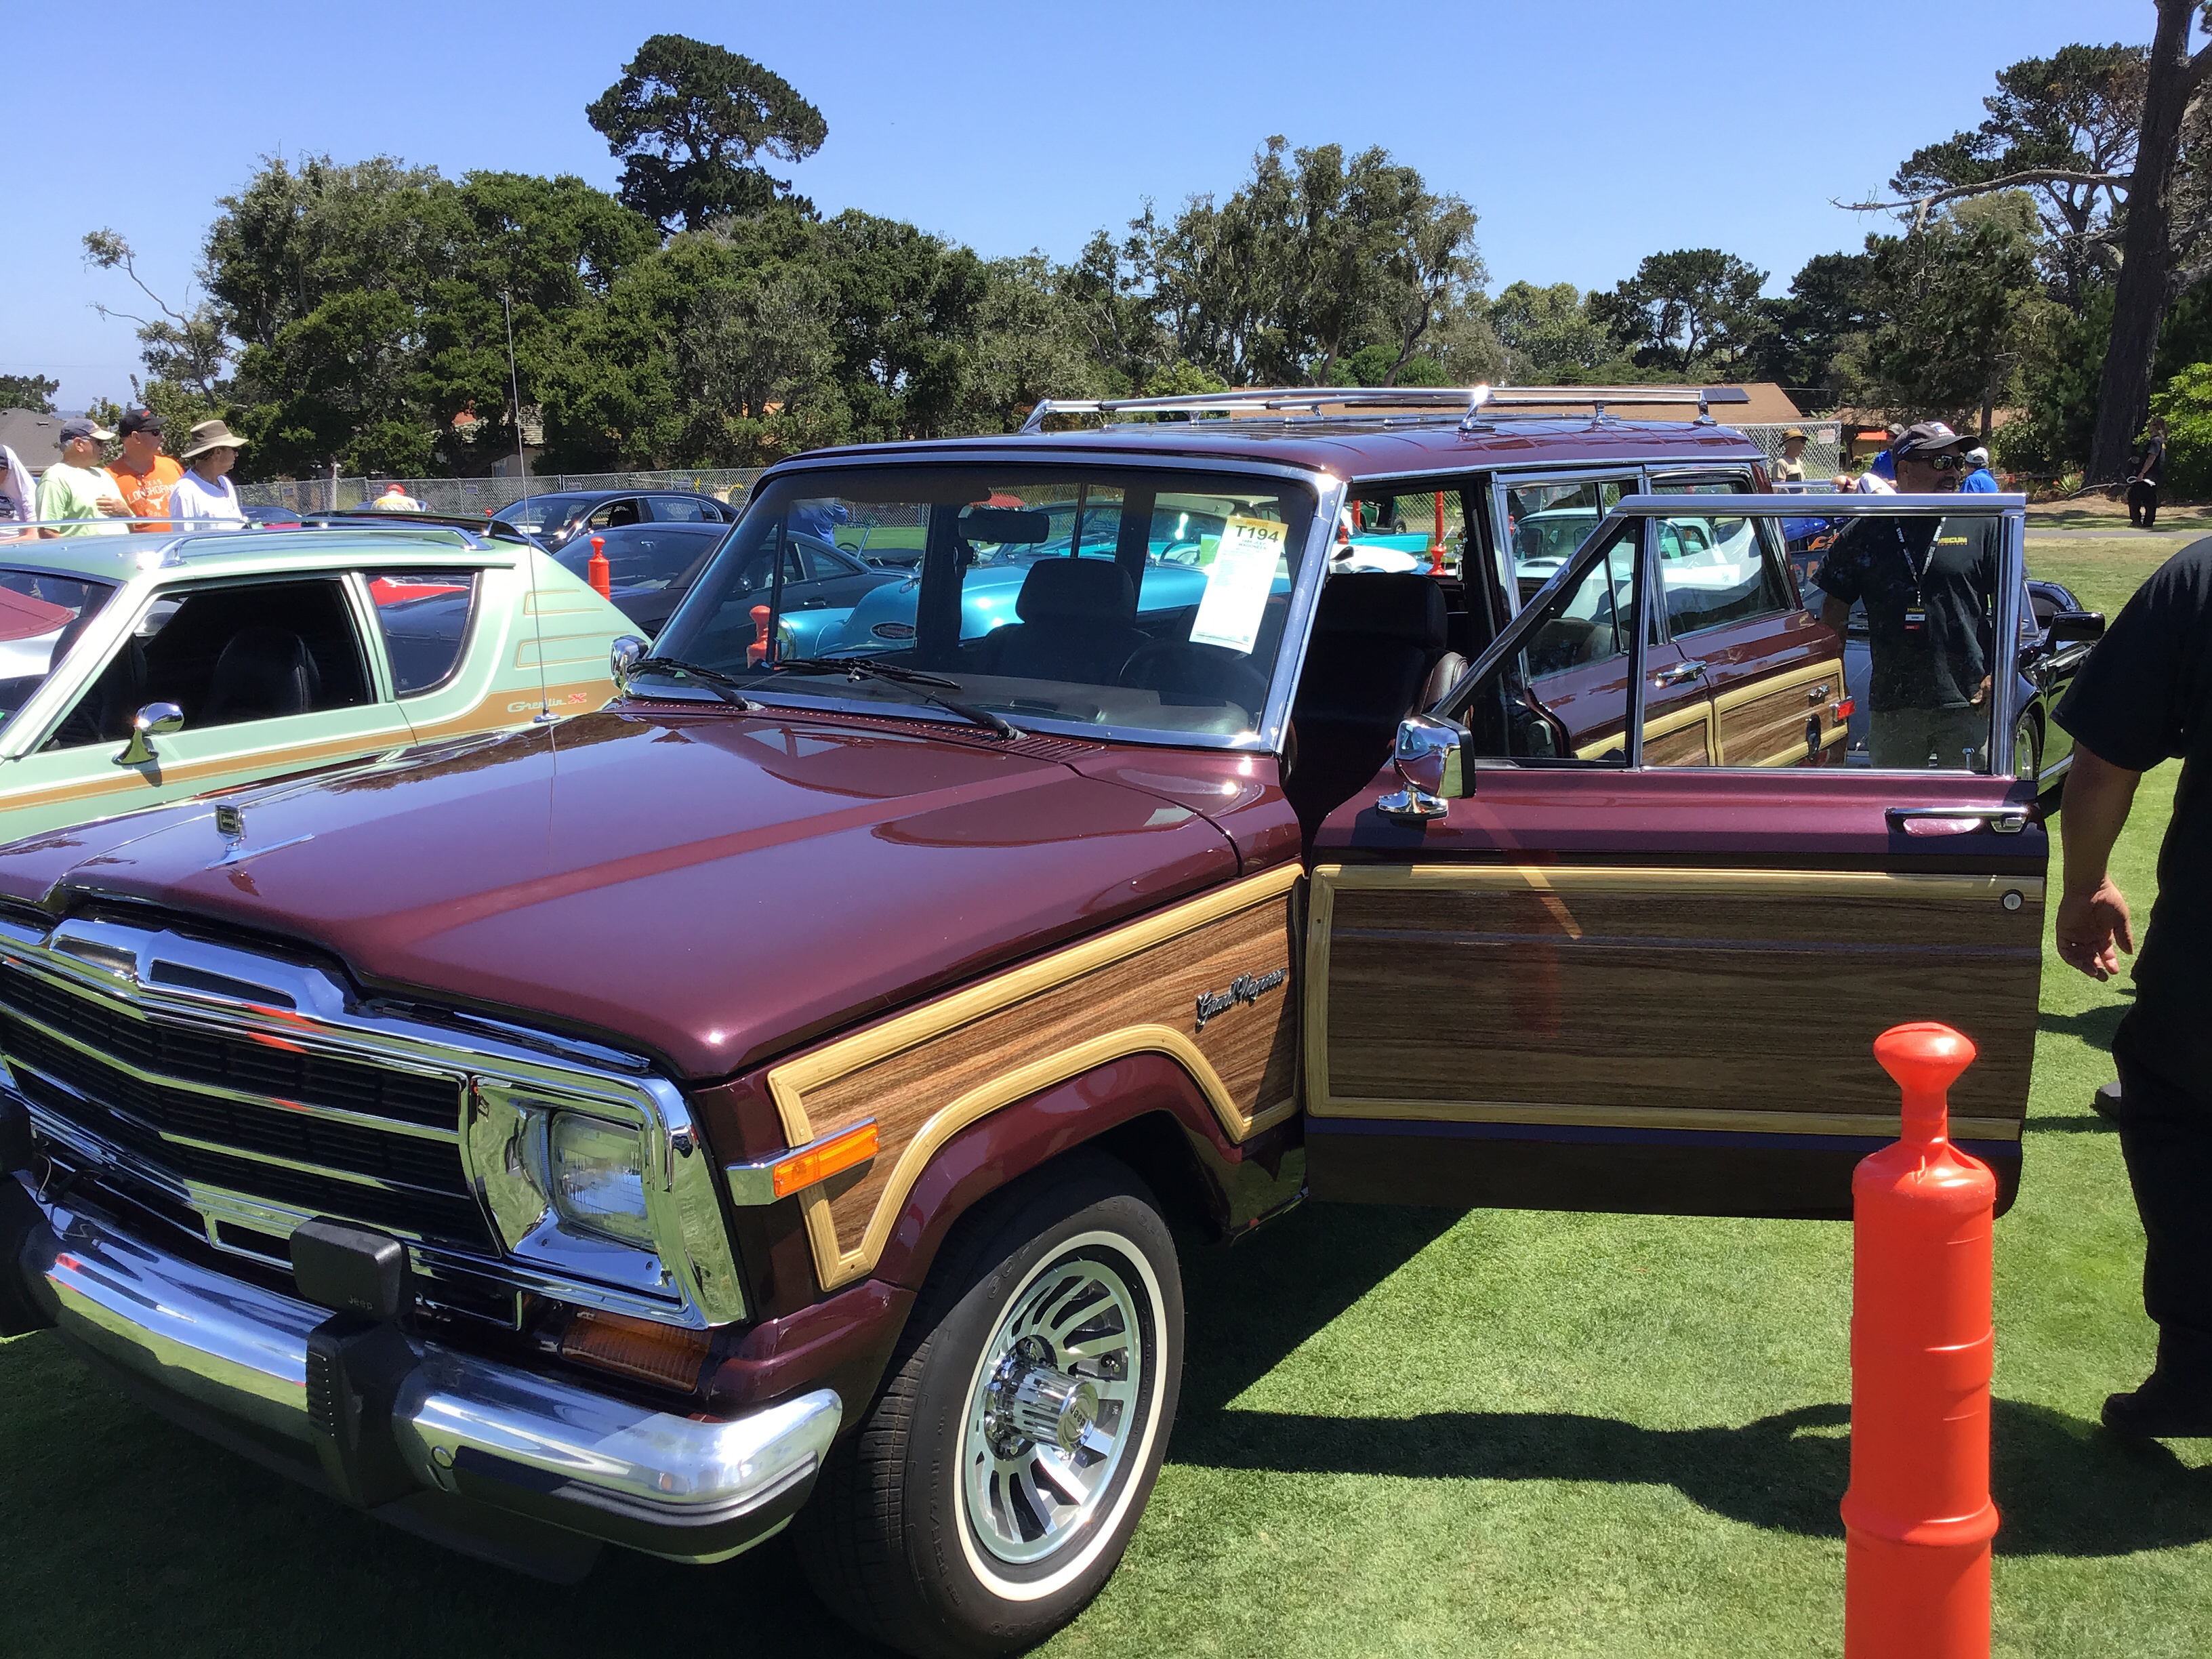 1985 Jeep Grand Wagoneer Values | Hagerty Valuation Tool®